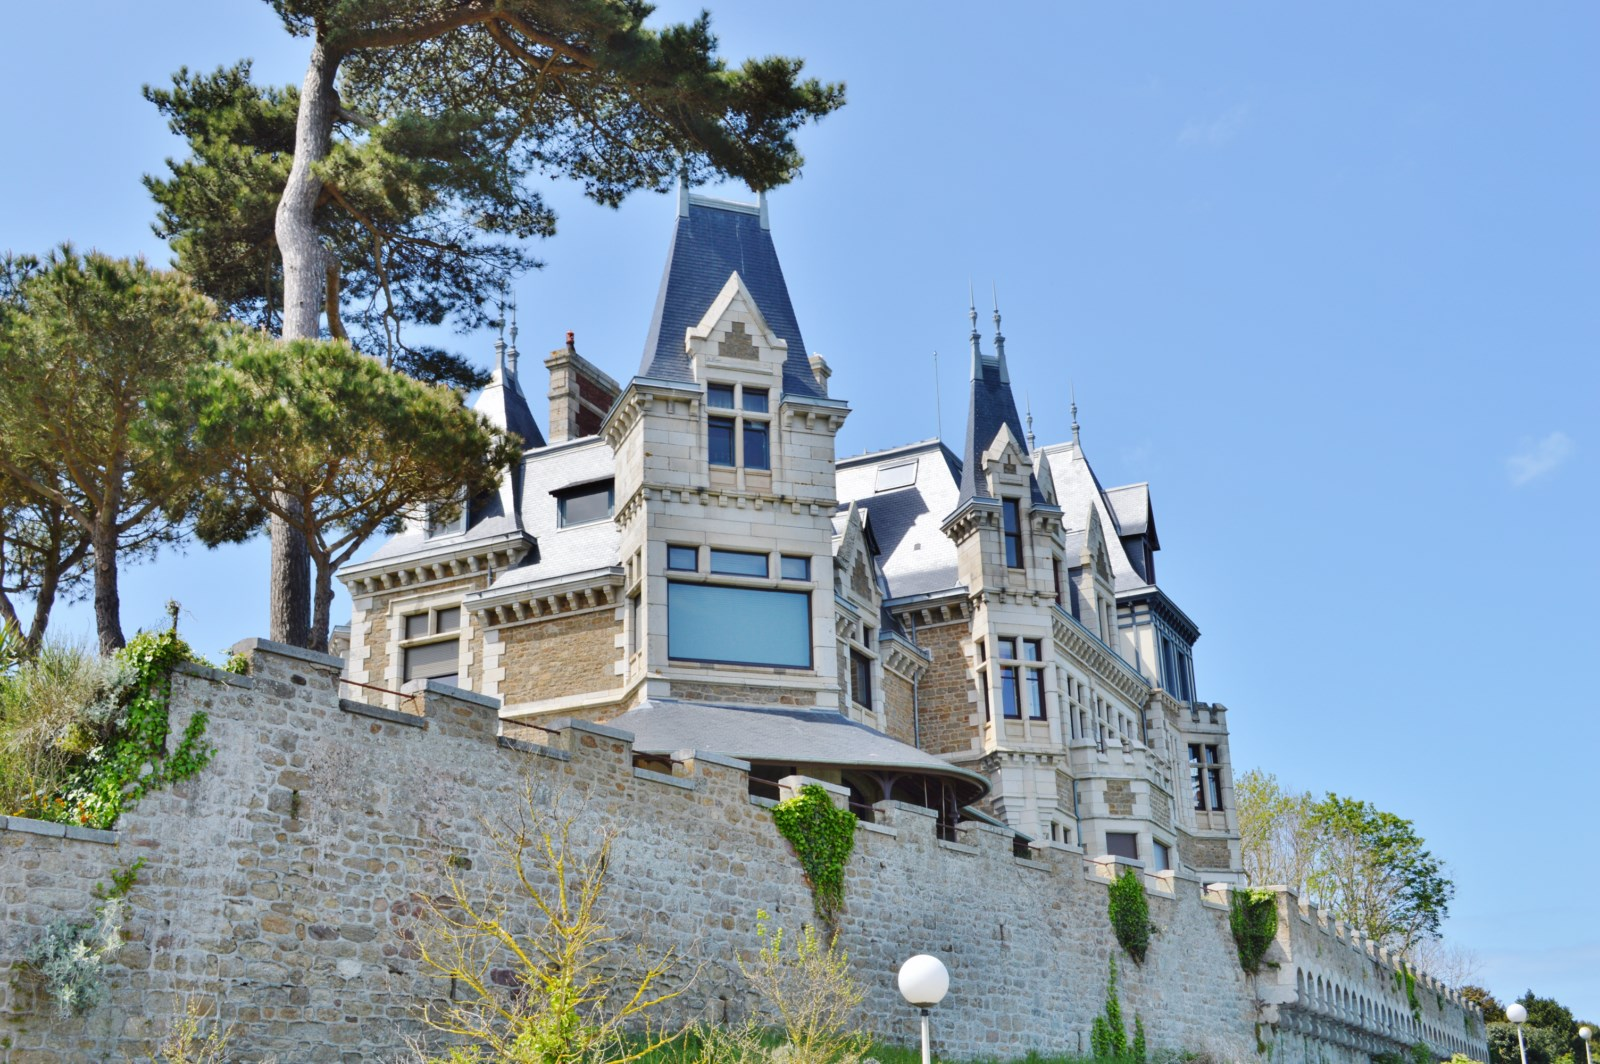 seaside resort called villa care home french heritage monument to dinard. Black Bedroom Furniture Sets. Home Design Ideas